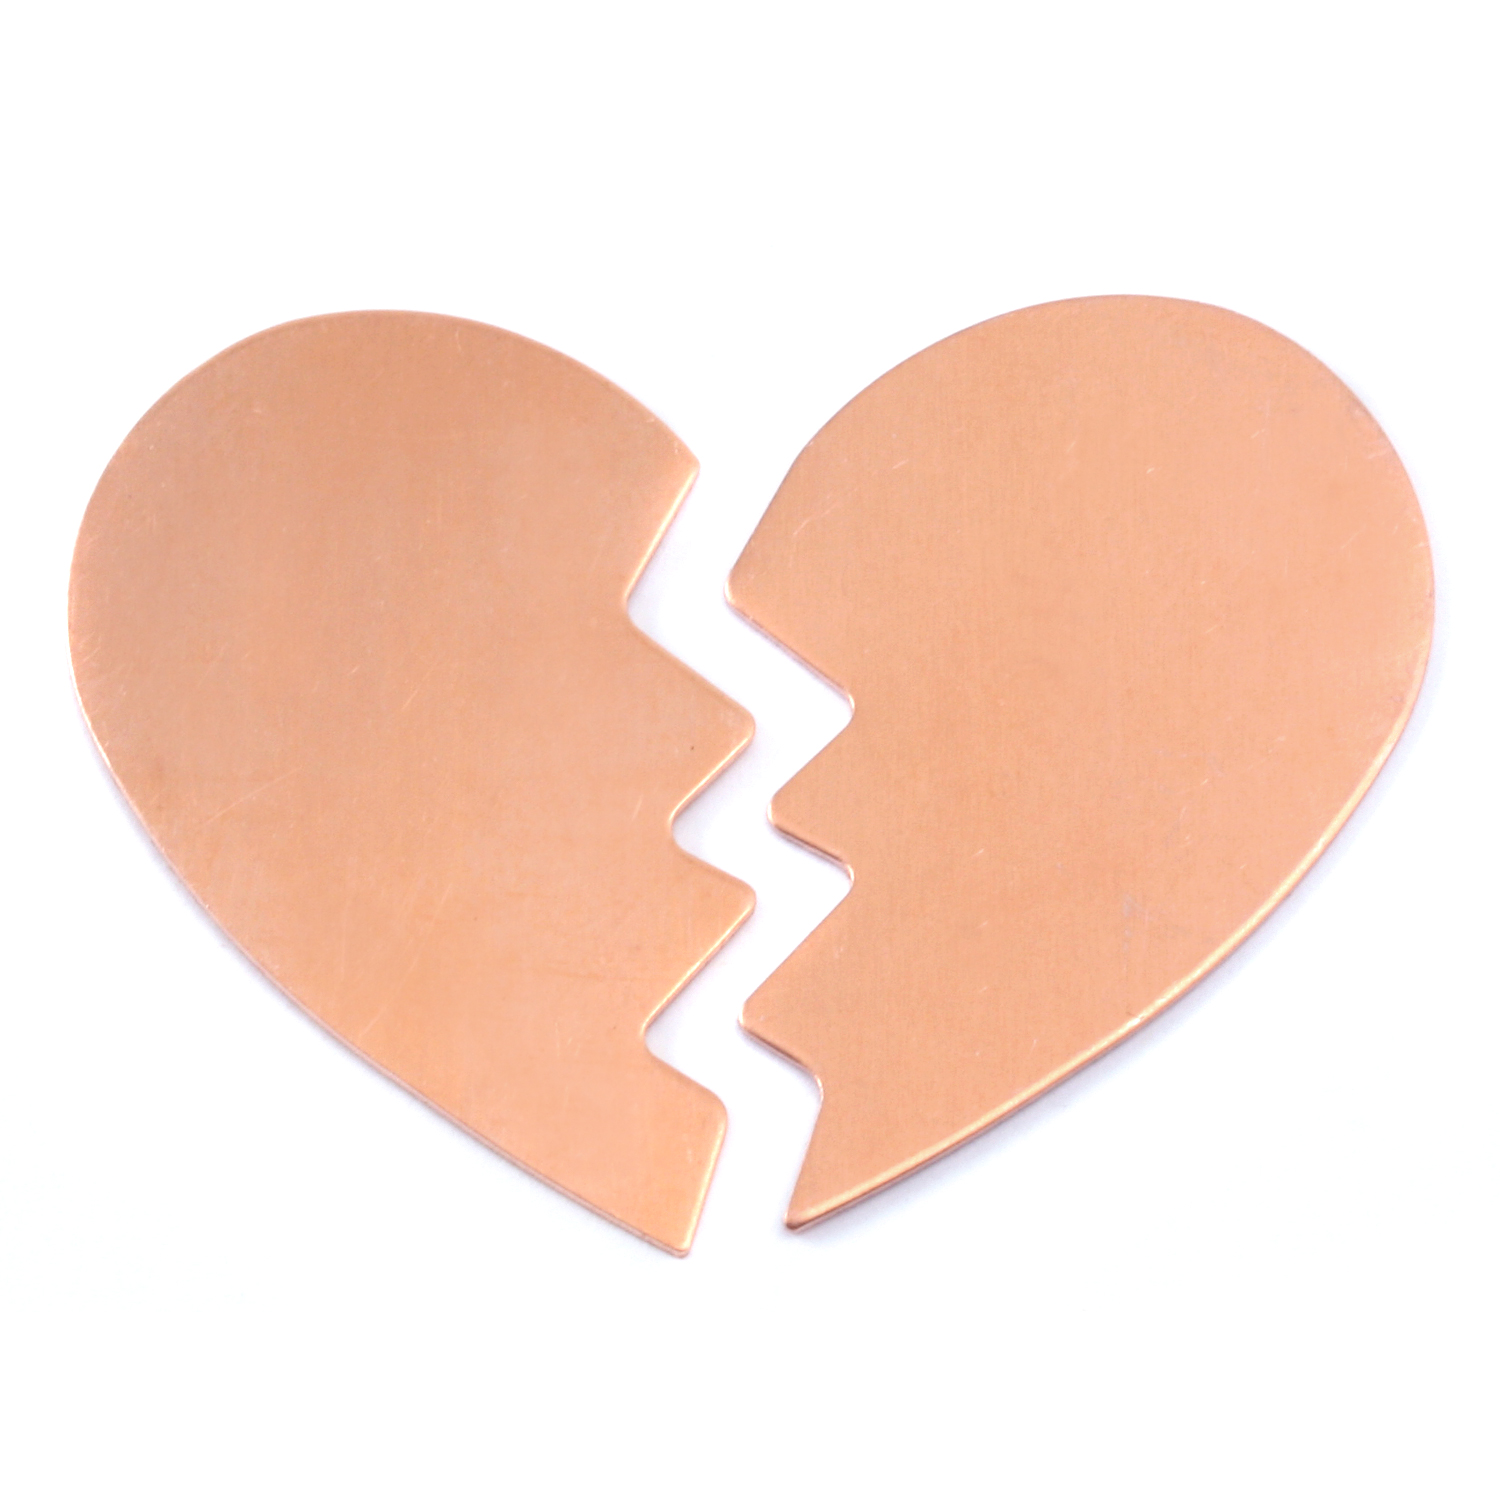 Copper Large Broken Heart, 2 pieces, 24g